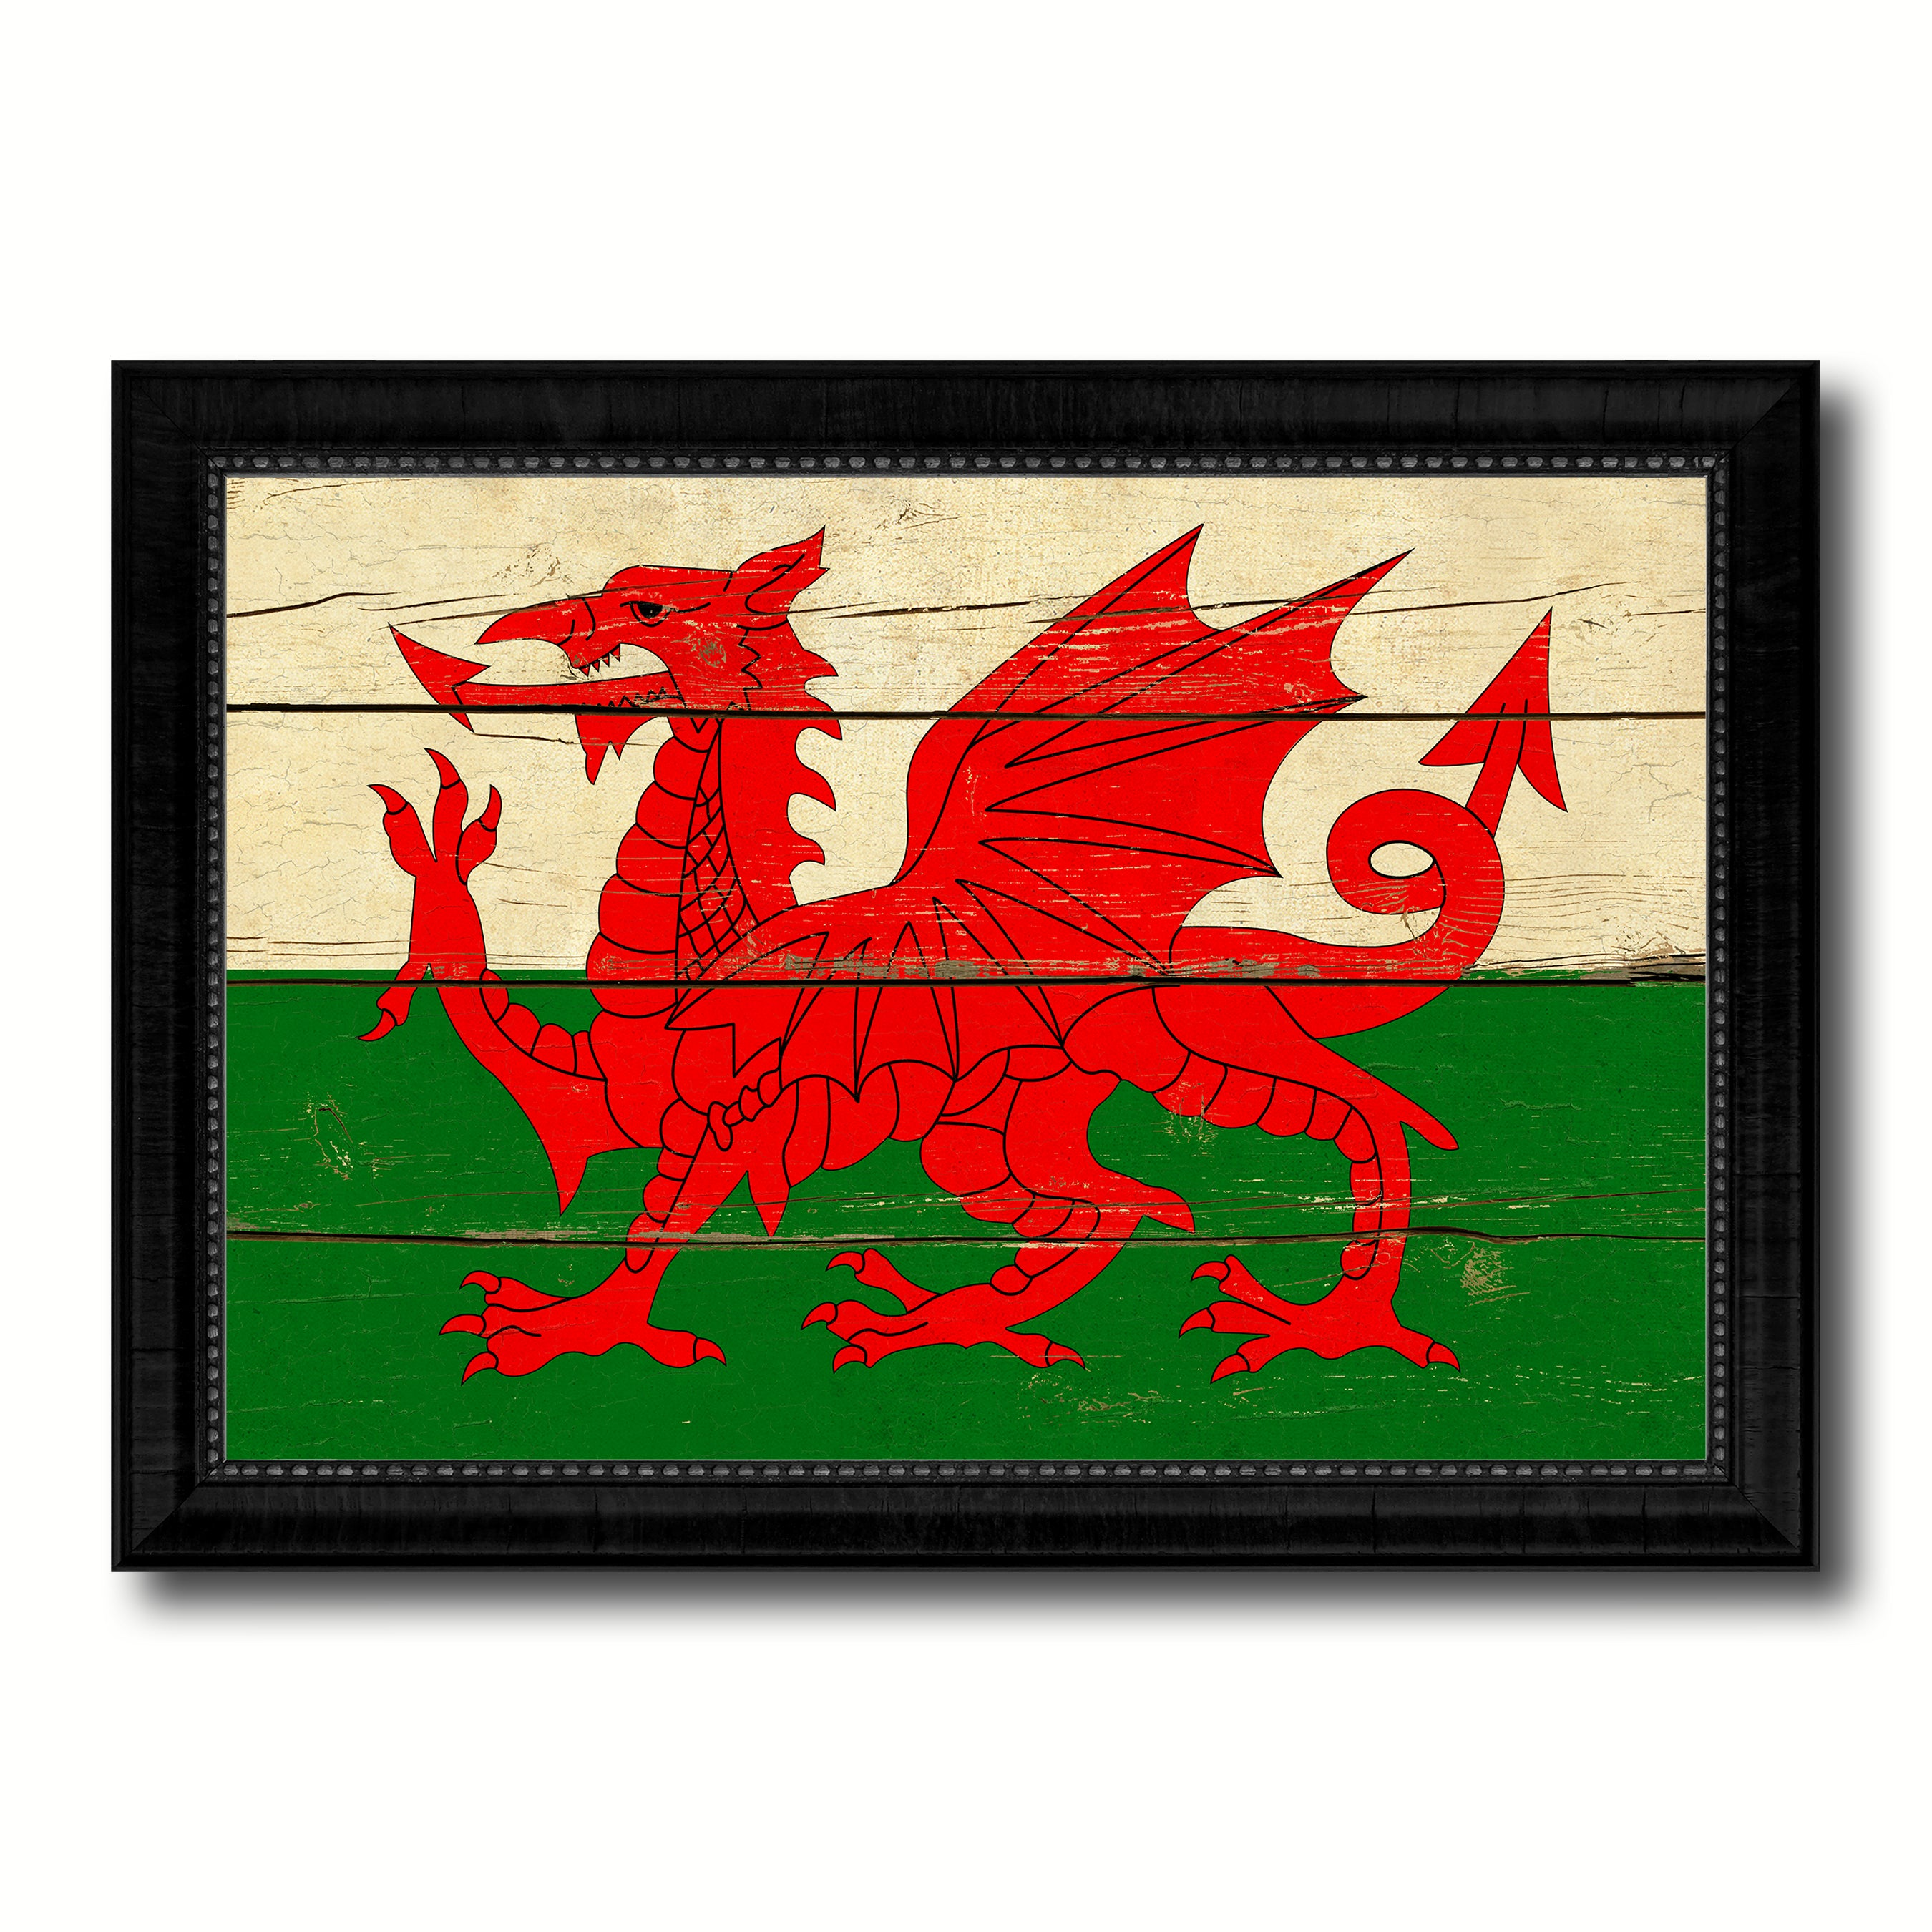 Wales Country Flag Vintage Canvas Print with Black Picture Frame Home Decor Gifts Wall Art Decoration Artwork